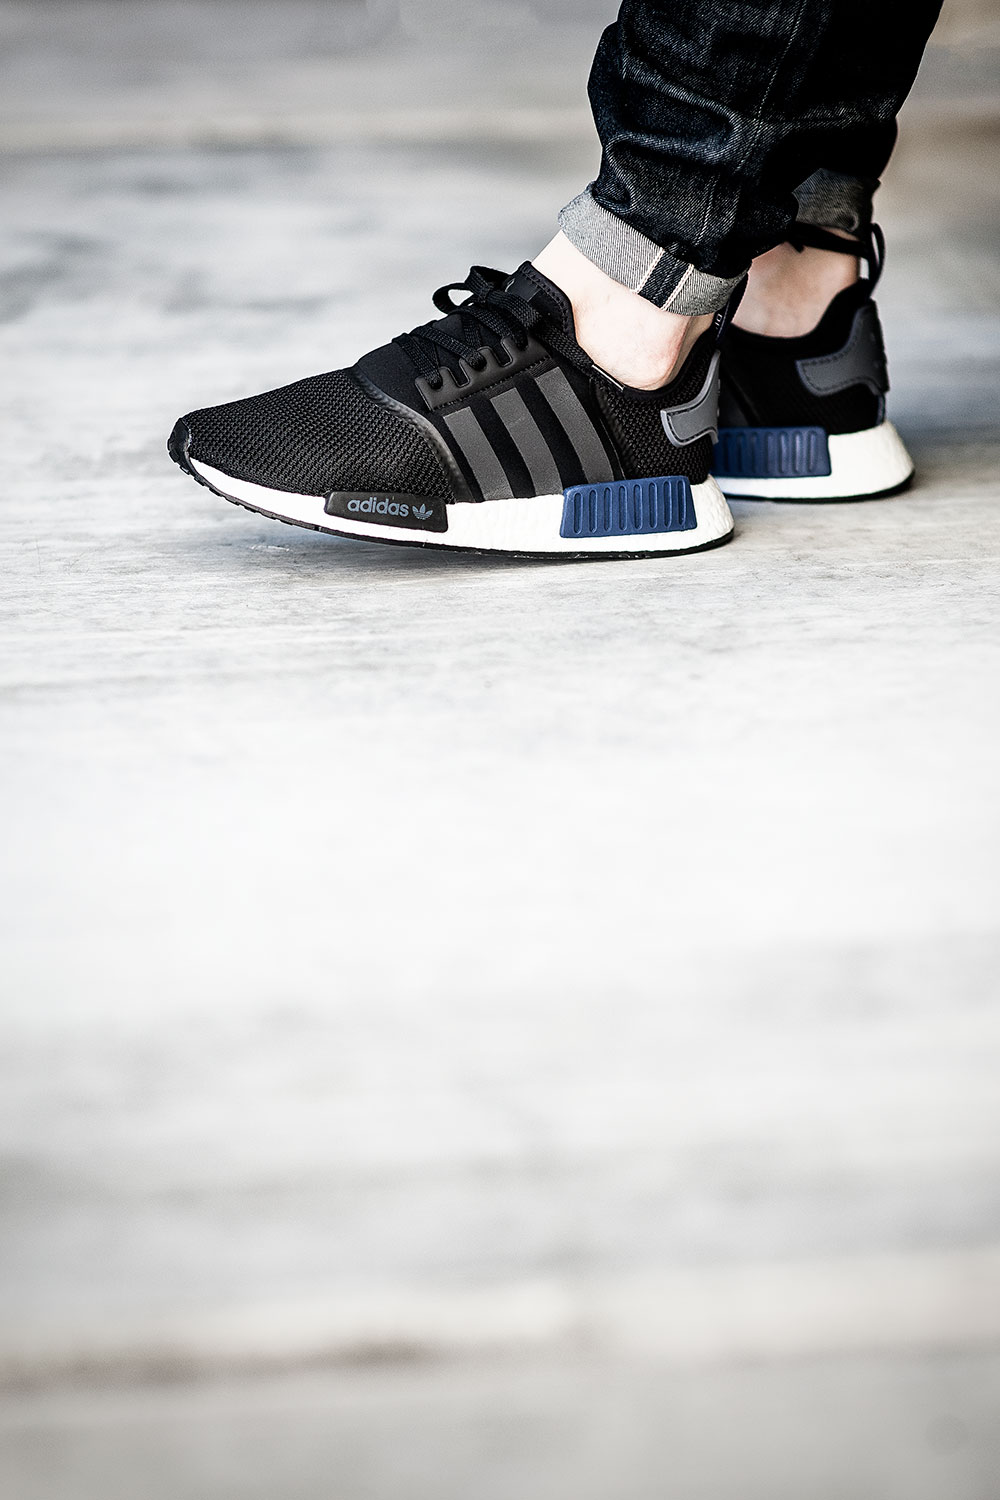 adidas NMD R1 Nomad Charcoal Grey Wool Bw0616 Boost Reflective